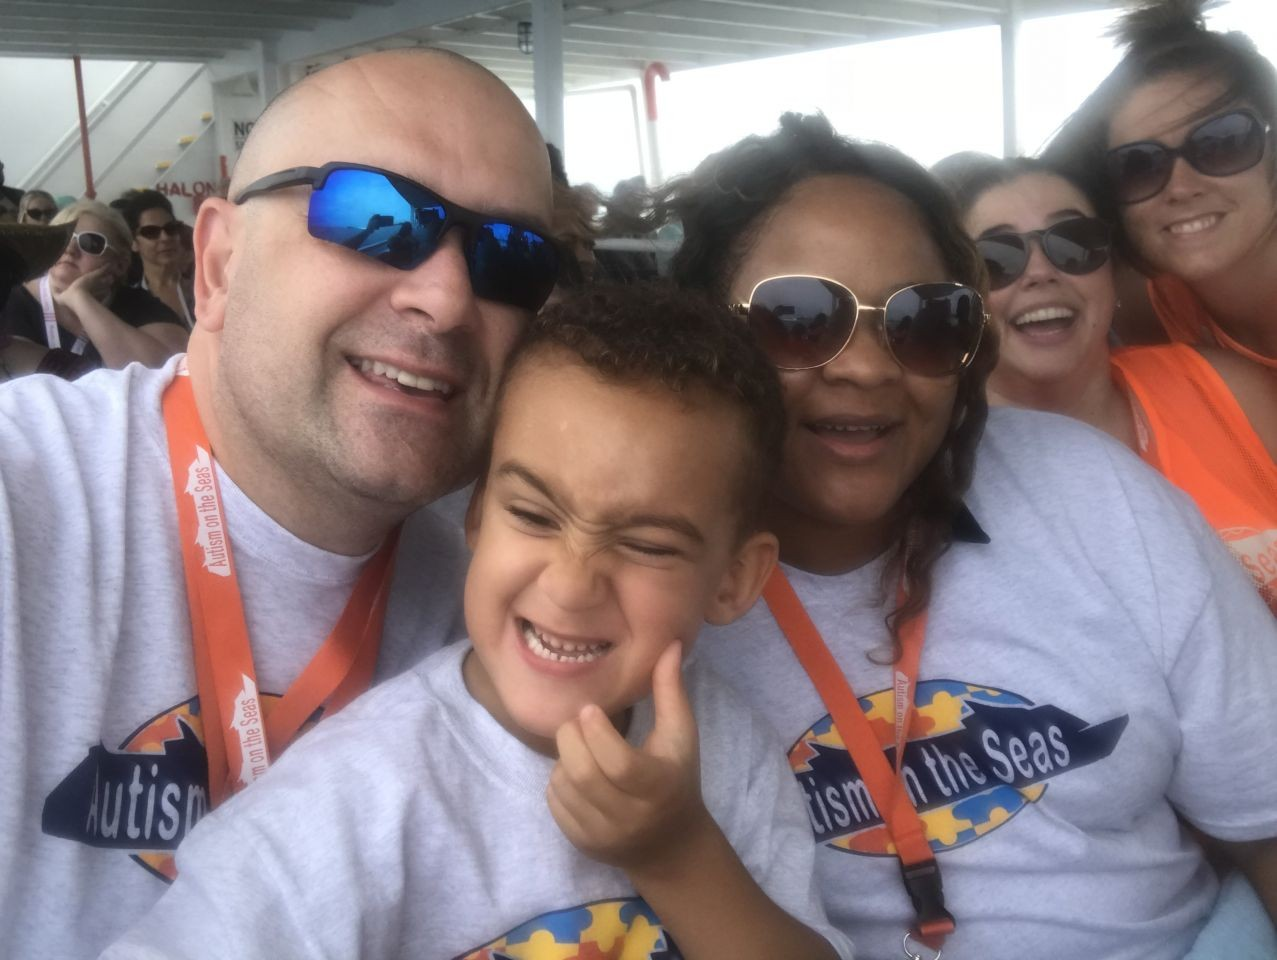 Camden, a pre-schooler with autism, makes new friends on his first Autism on the Seas cruise